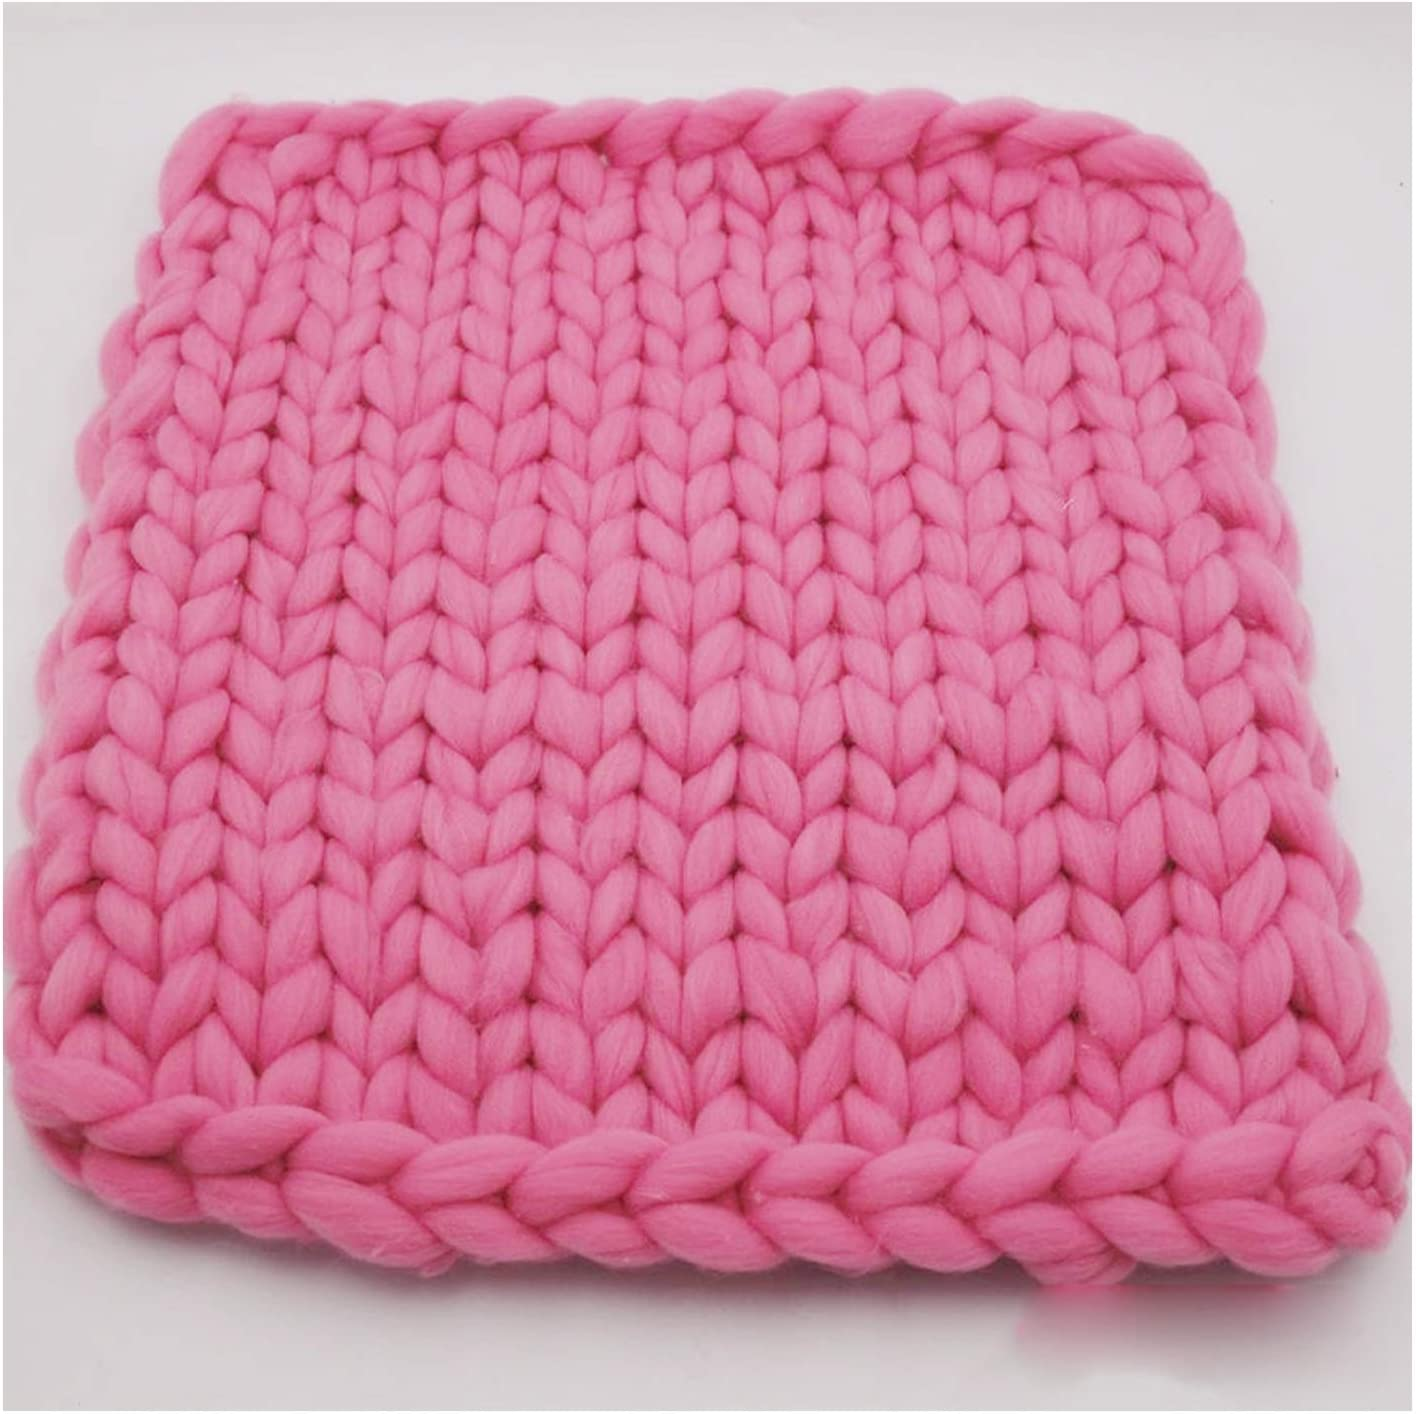 YXYH Chunky Credence Atlanta Mall Knit Blanket Hand Knitted Thick Yarn Knitting Throw